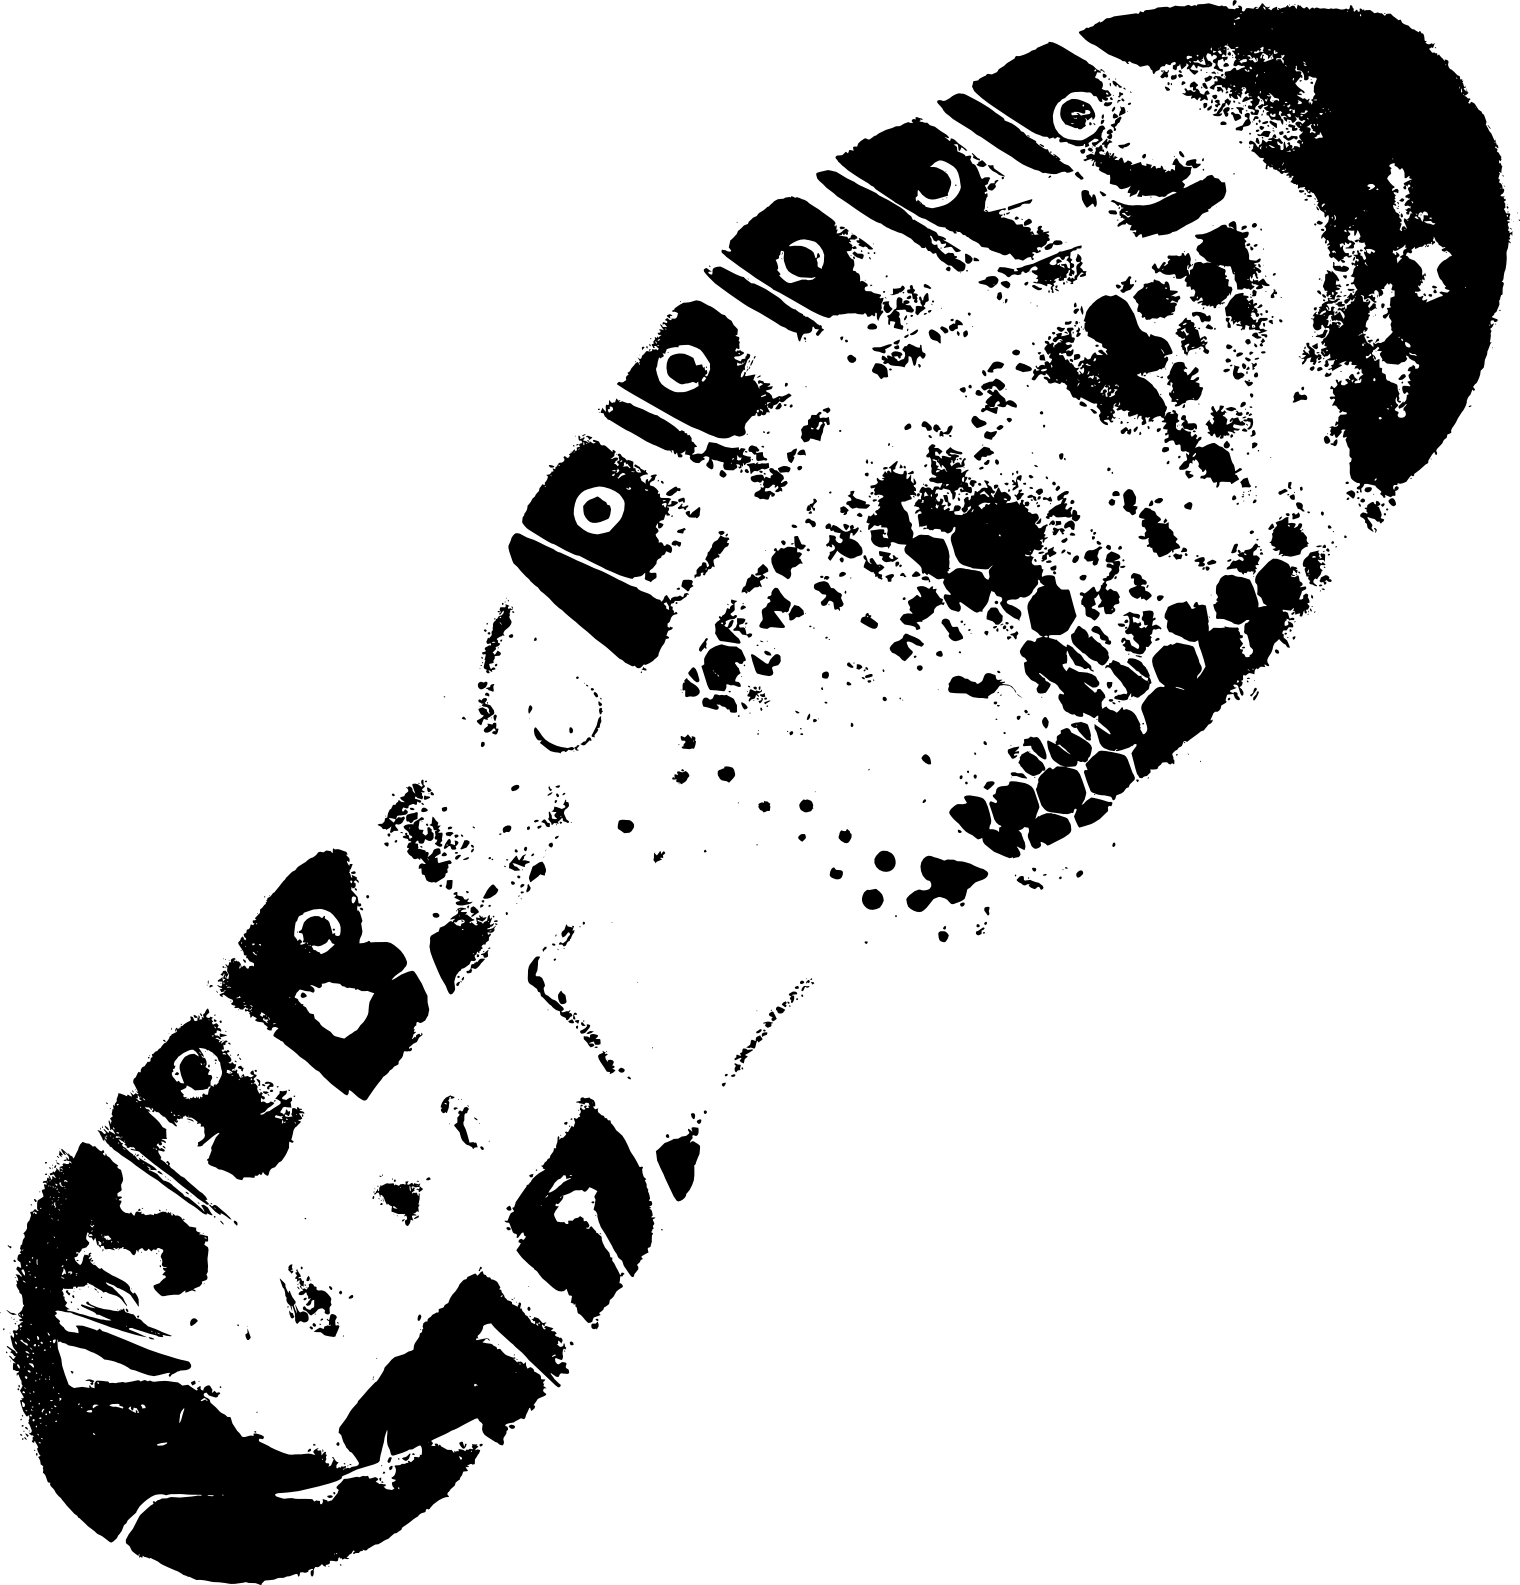 Footprint png. Shoe footprints transparent